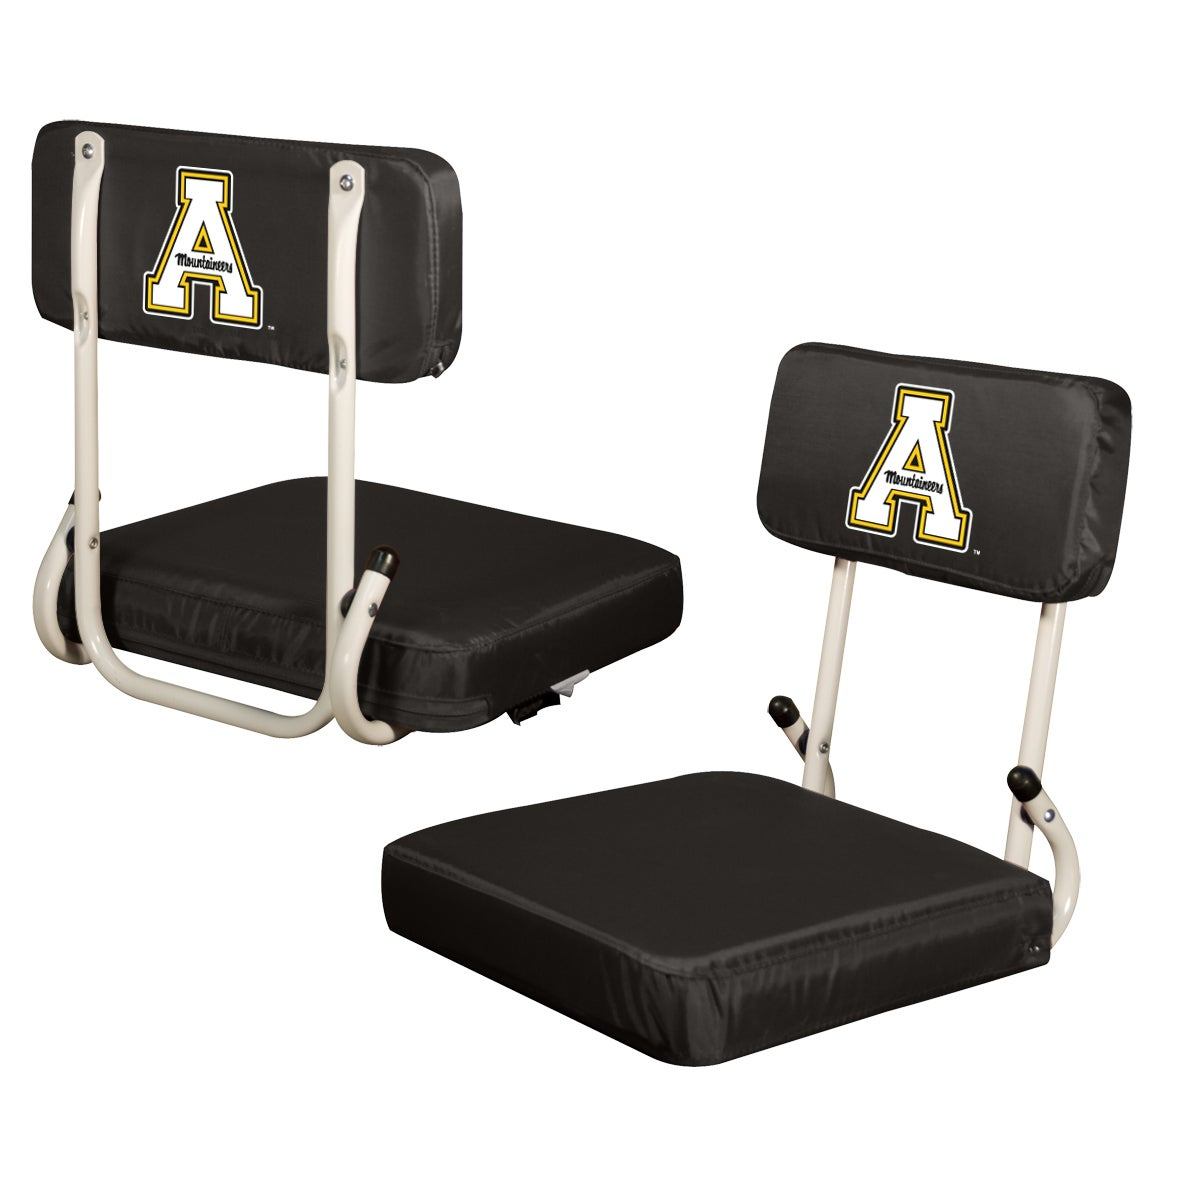 Overstock.com Appalachian State 'Mountaineers' Hard Back Folding Stadium Seat at Sears.com